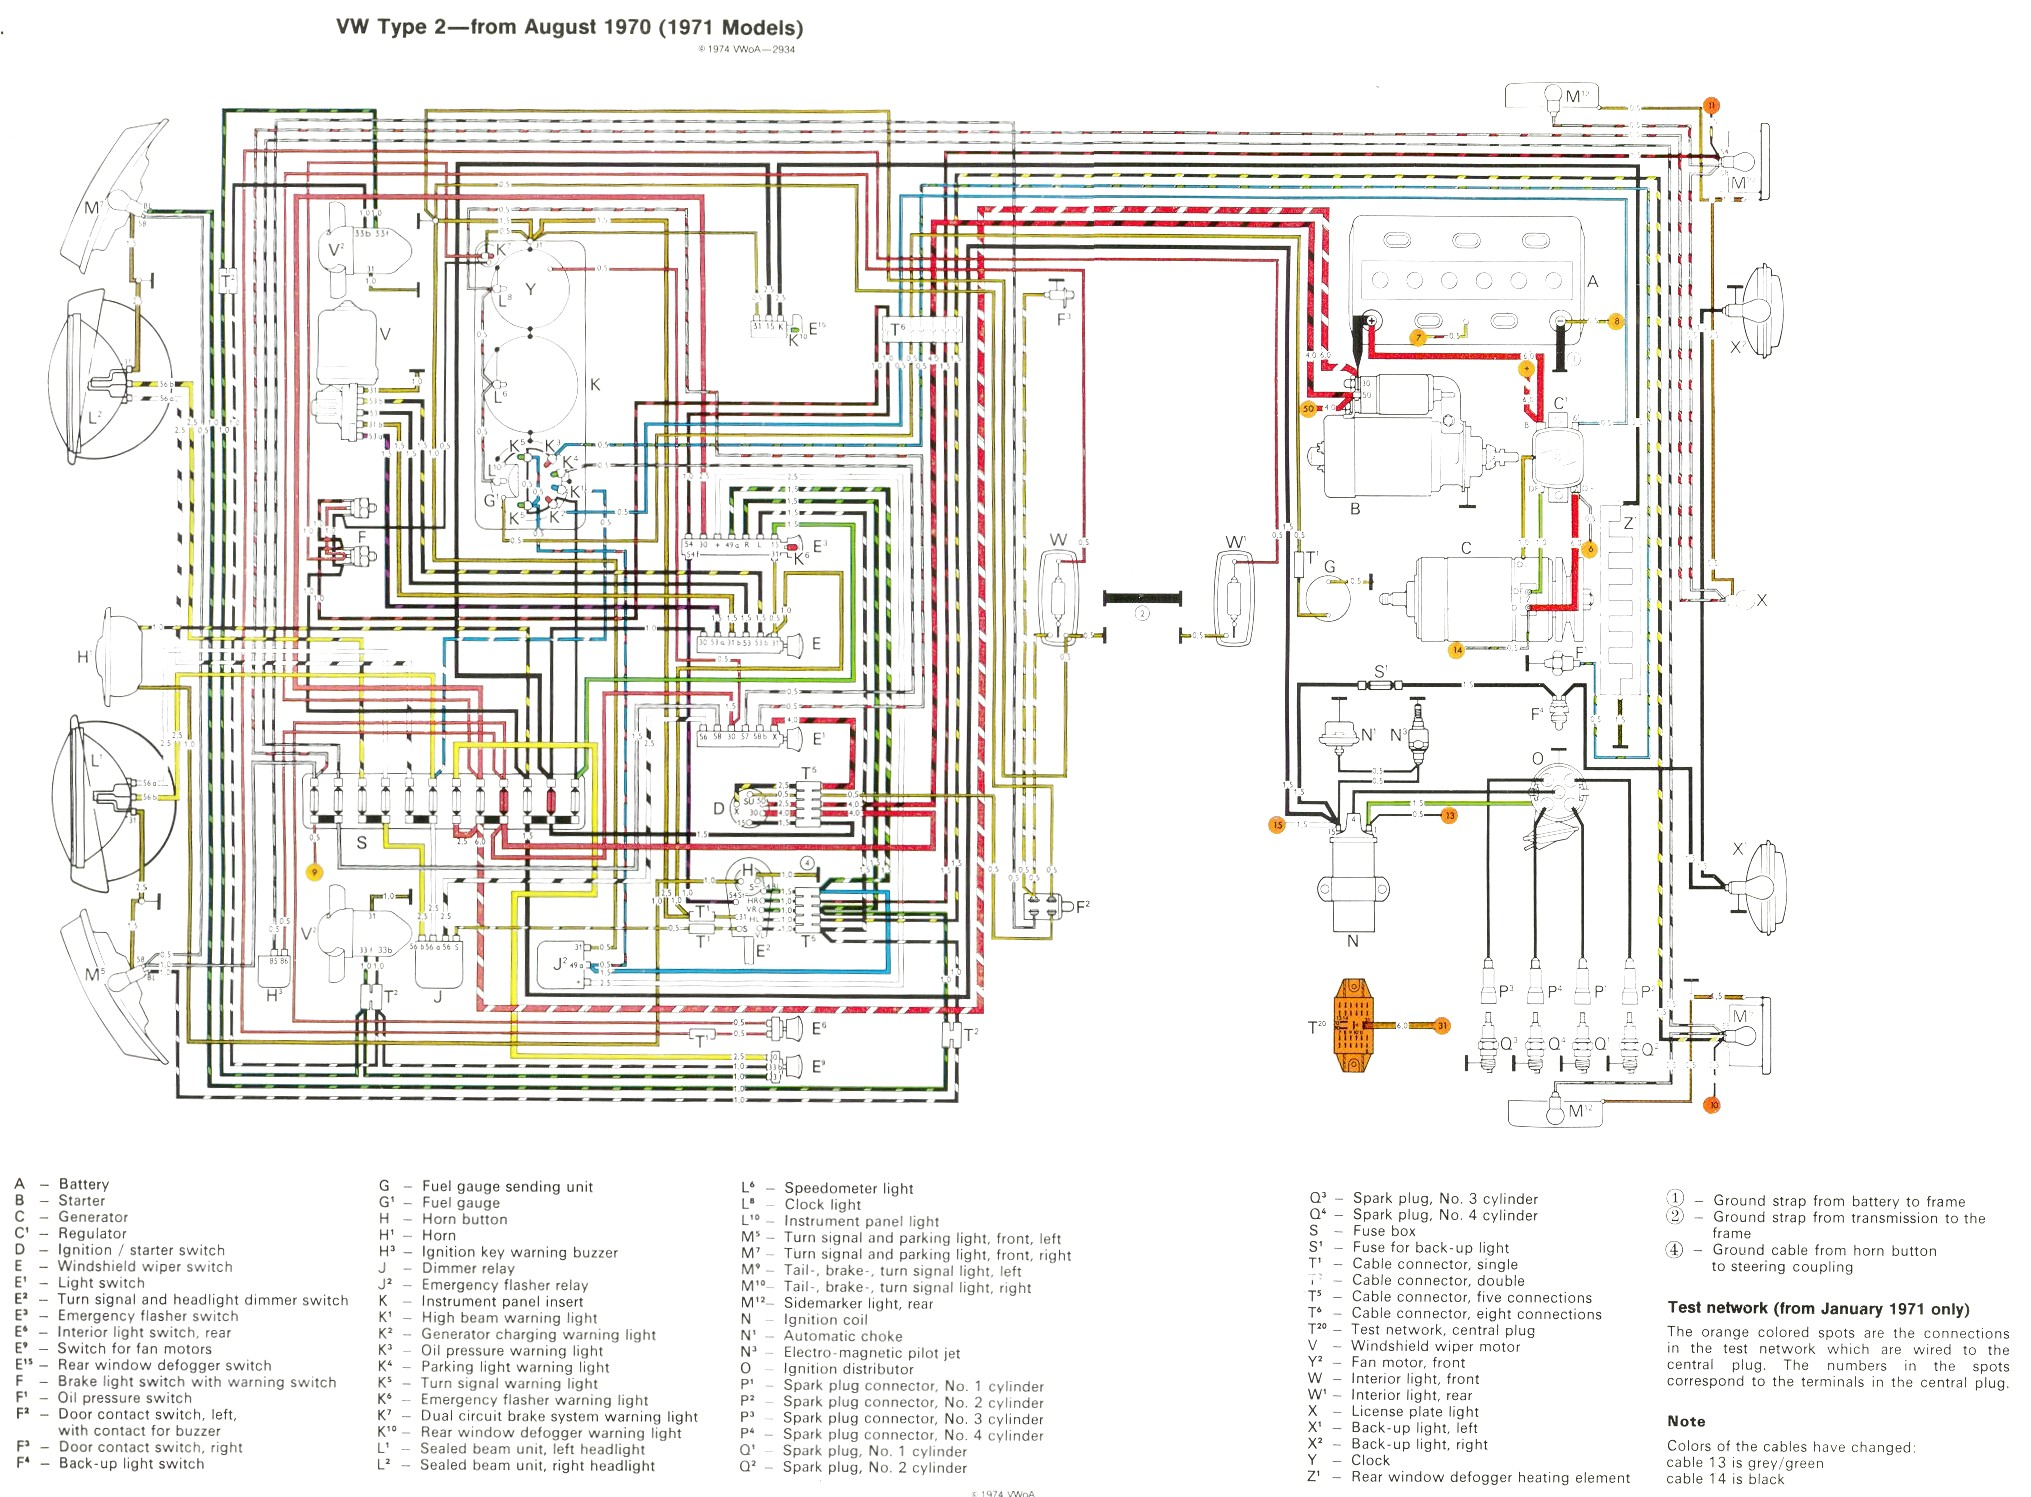 bus 70 71 baywindow fusebox layout 1971 vw bus wiring diagram at highcare.asia